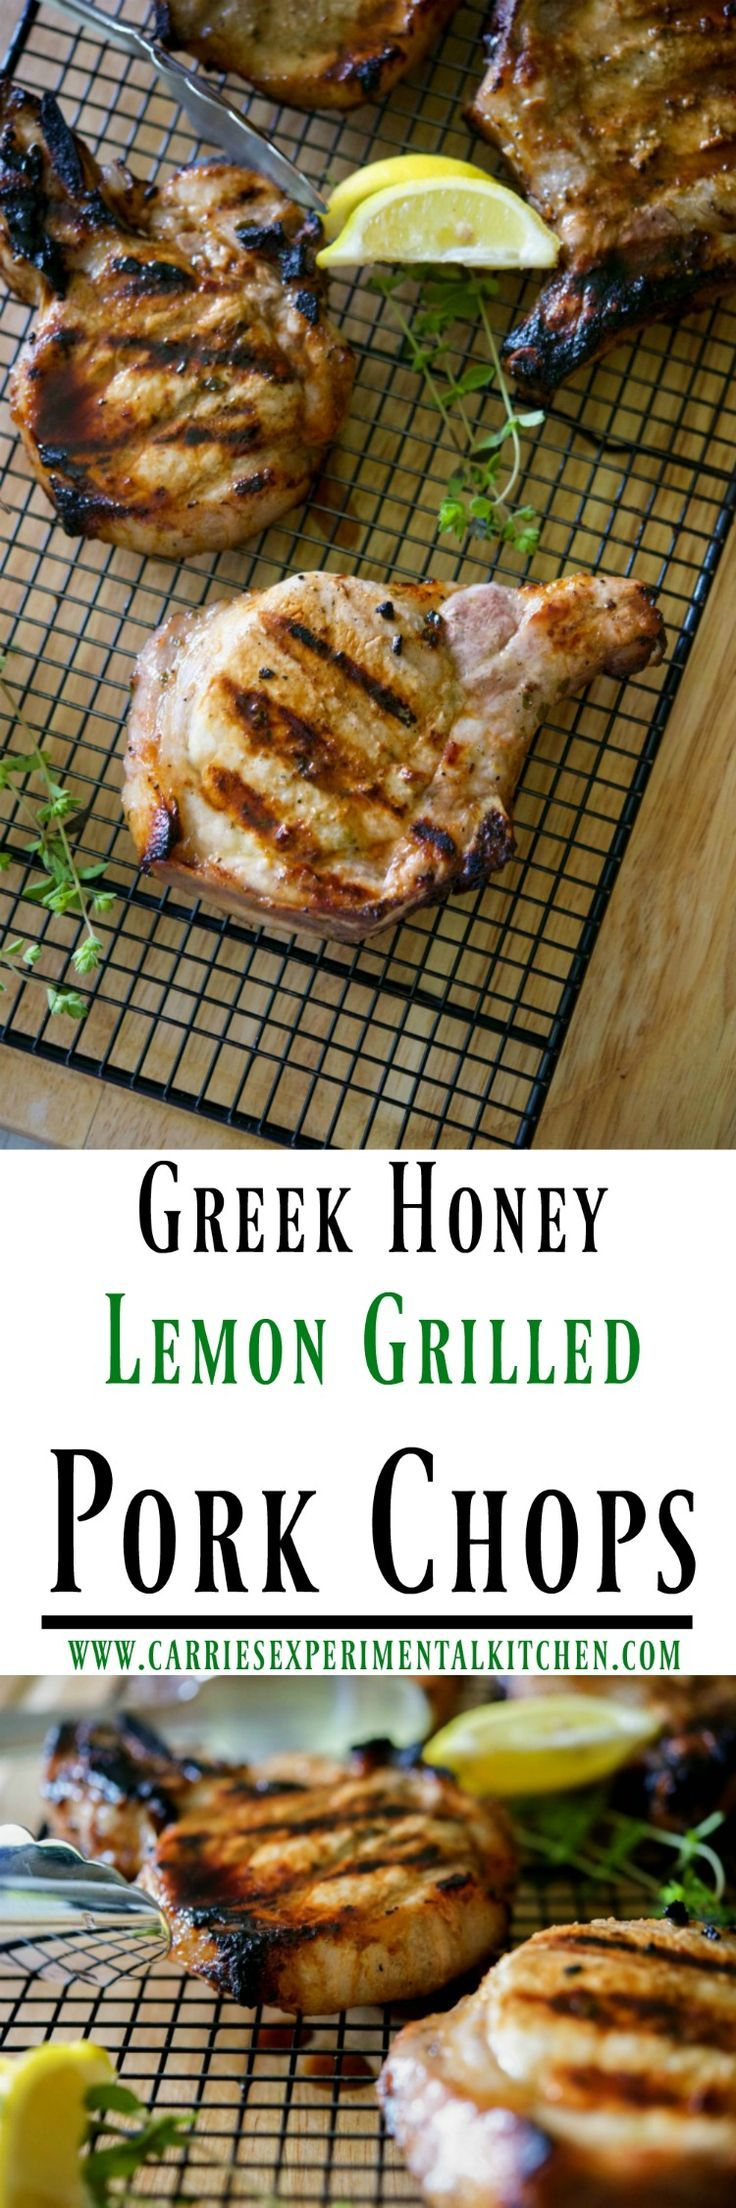 These Greek Honey Lemon Grilled Pork Chops made with fresh lemon, oregano, and honey create a simple, yet flavorful marinade.